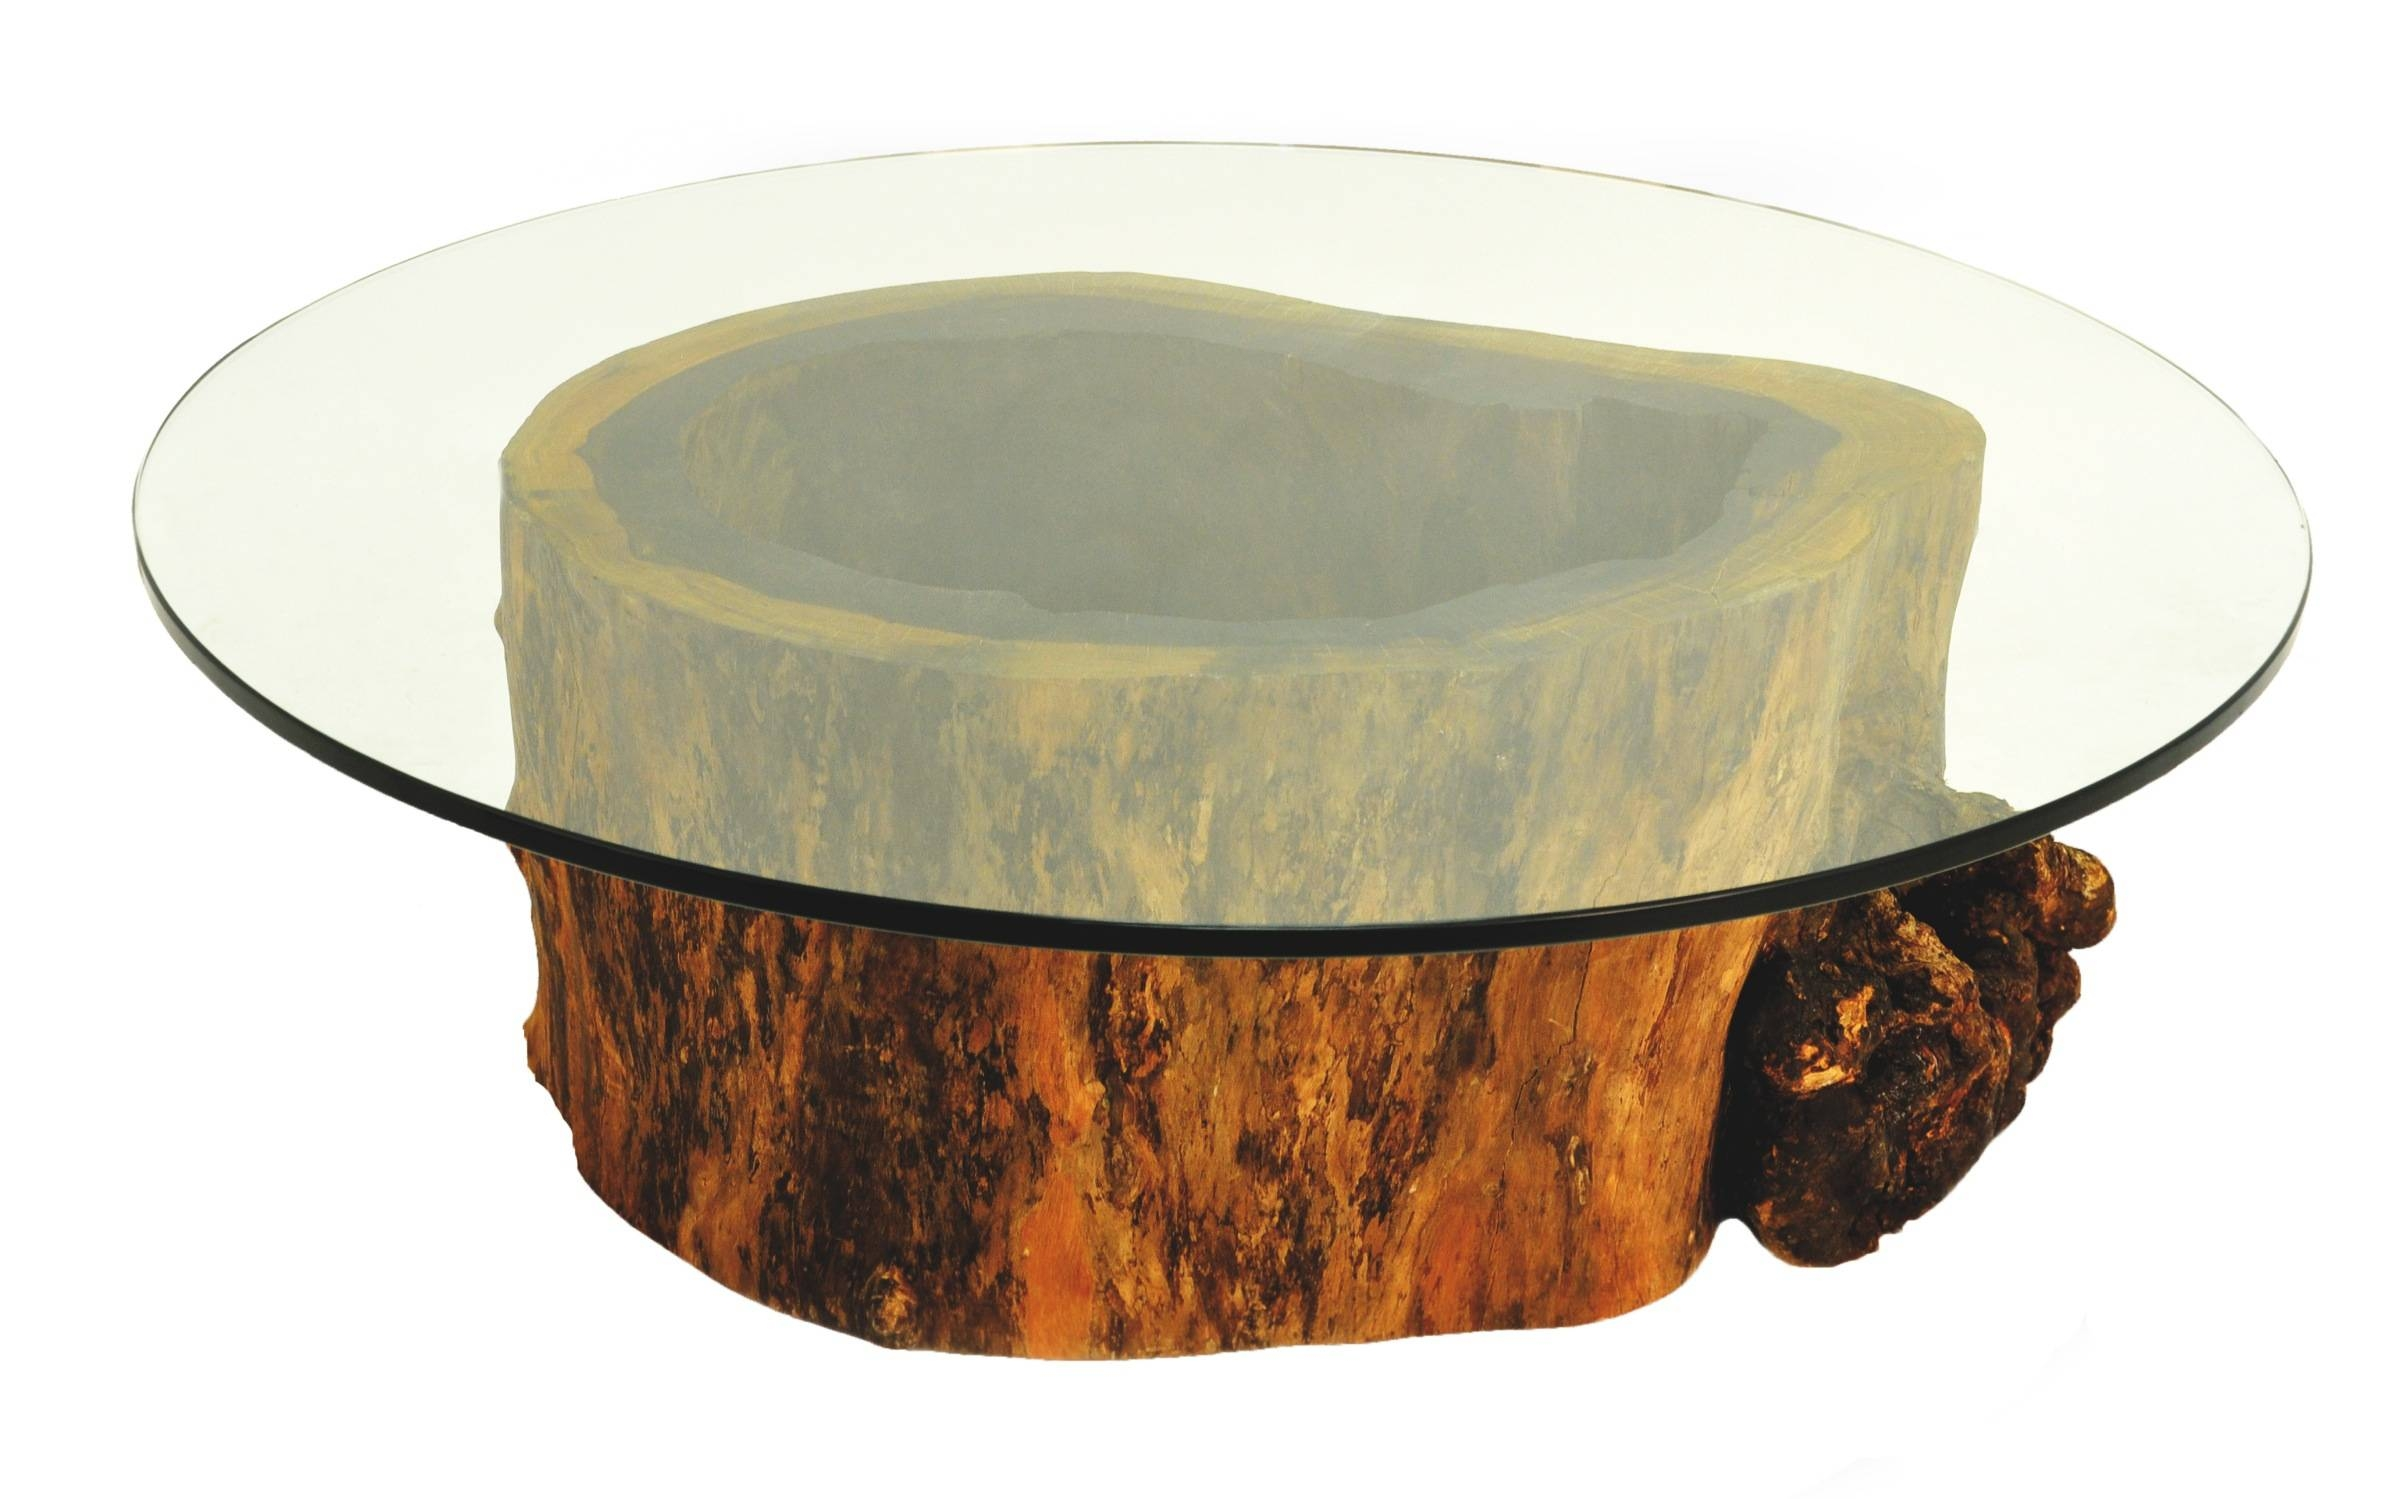 Glass Top Coffee Table With Wood Base | Coffee Tables Decoration for Round Glass And Wood Coffee Tables (Image 11 of 30)